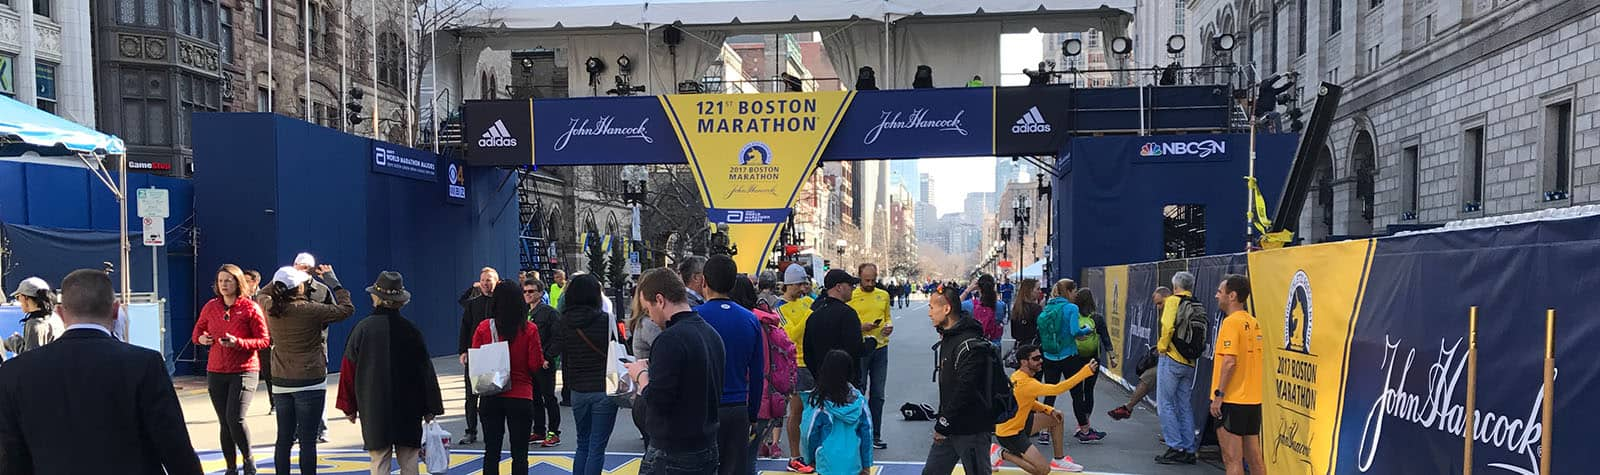 Boston Marathon 2017